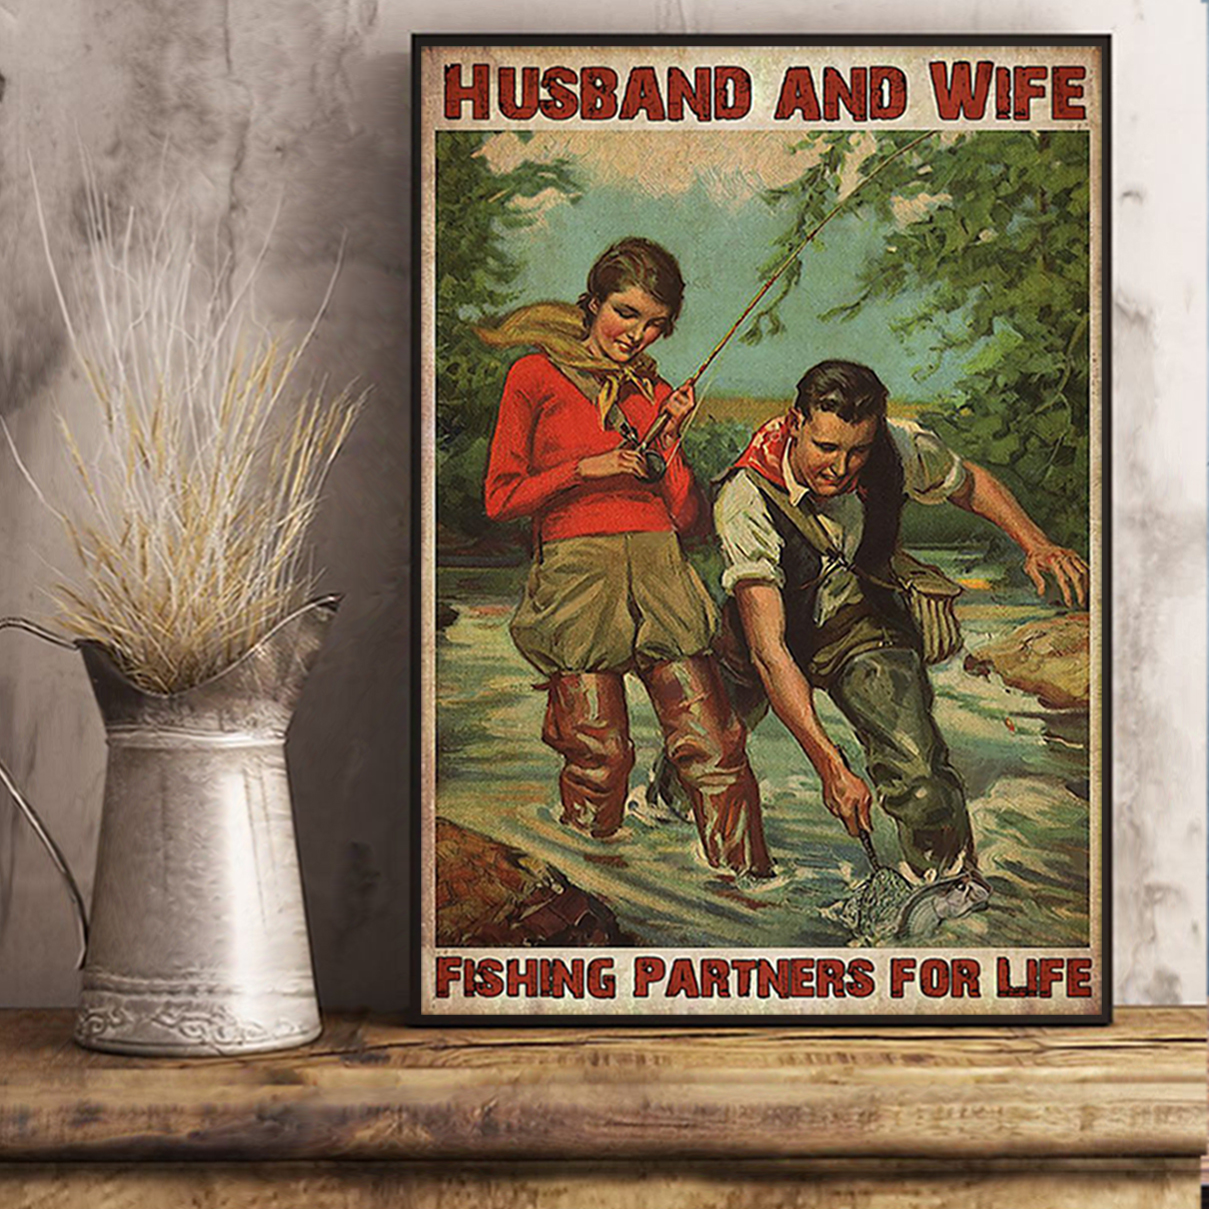 Husband and wife fishing partners for life poster A2